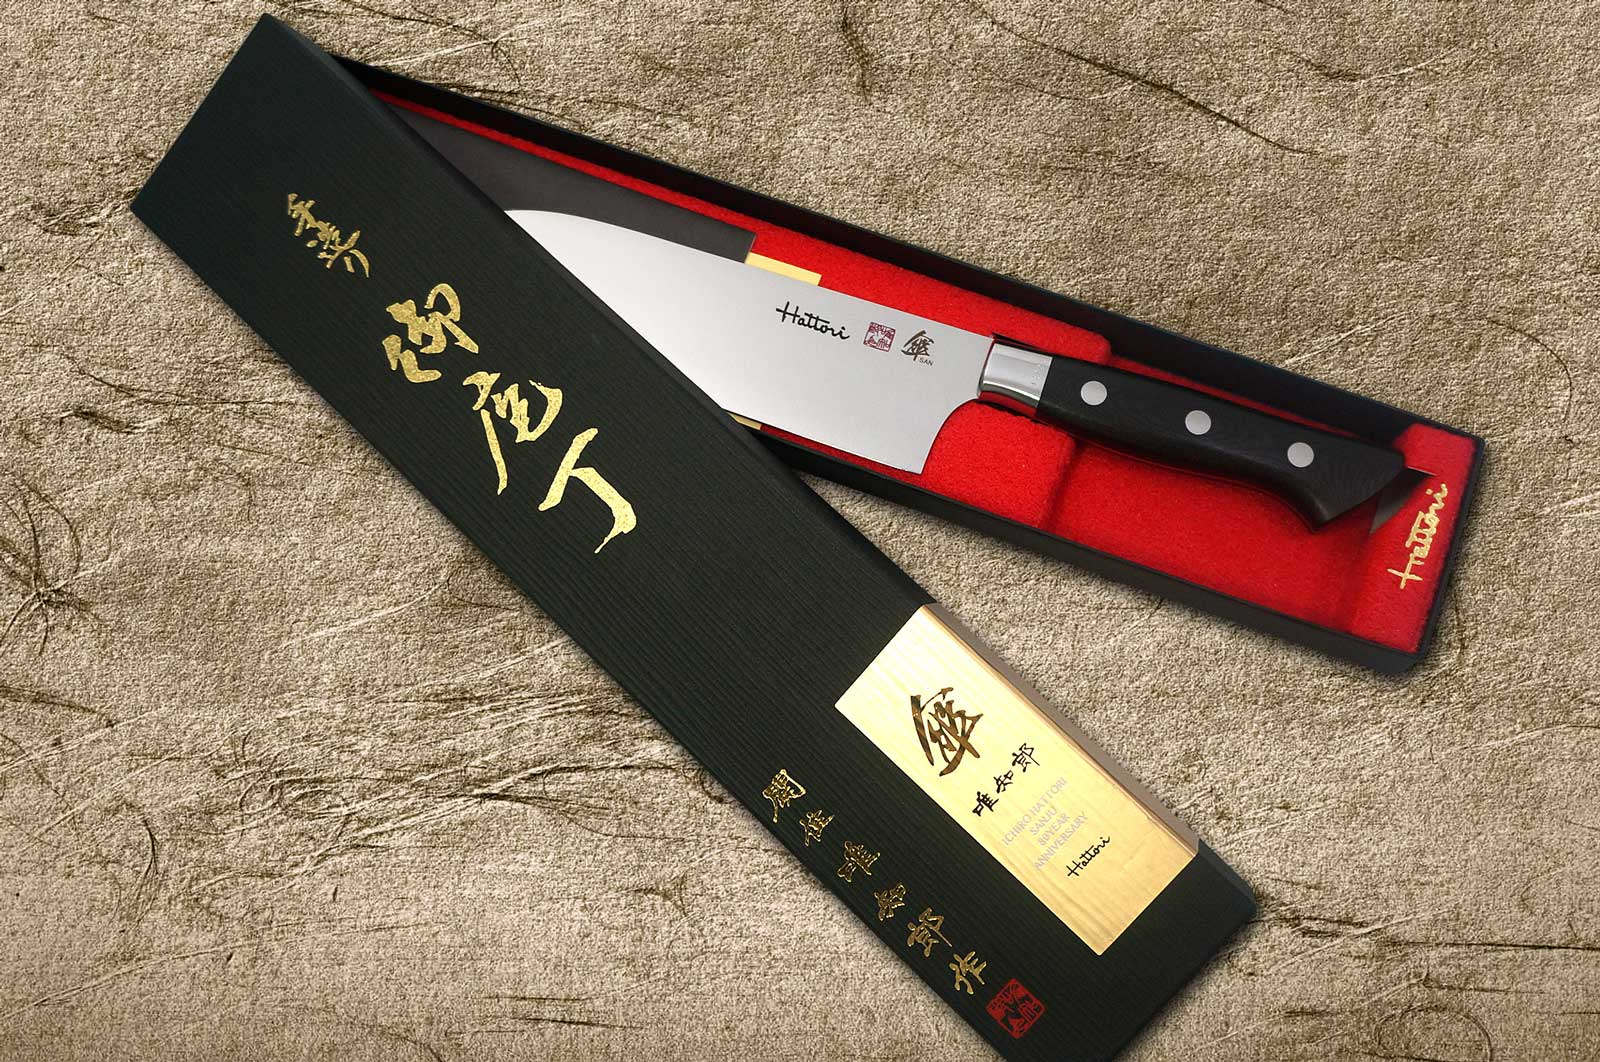 Hattori 80-Year-Old Anniversary Special VG10 Knives, only ...